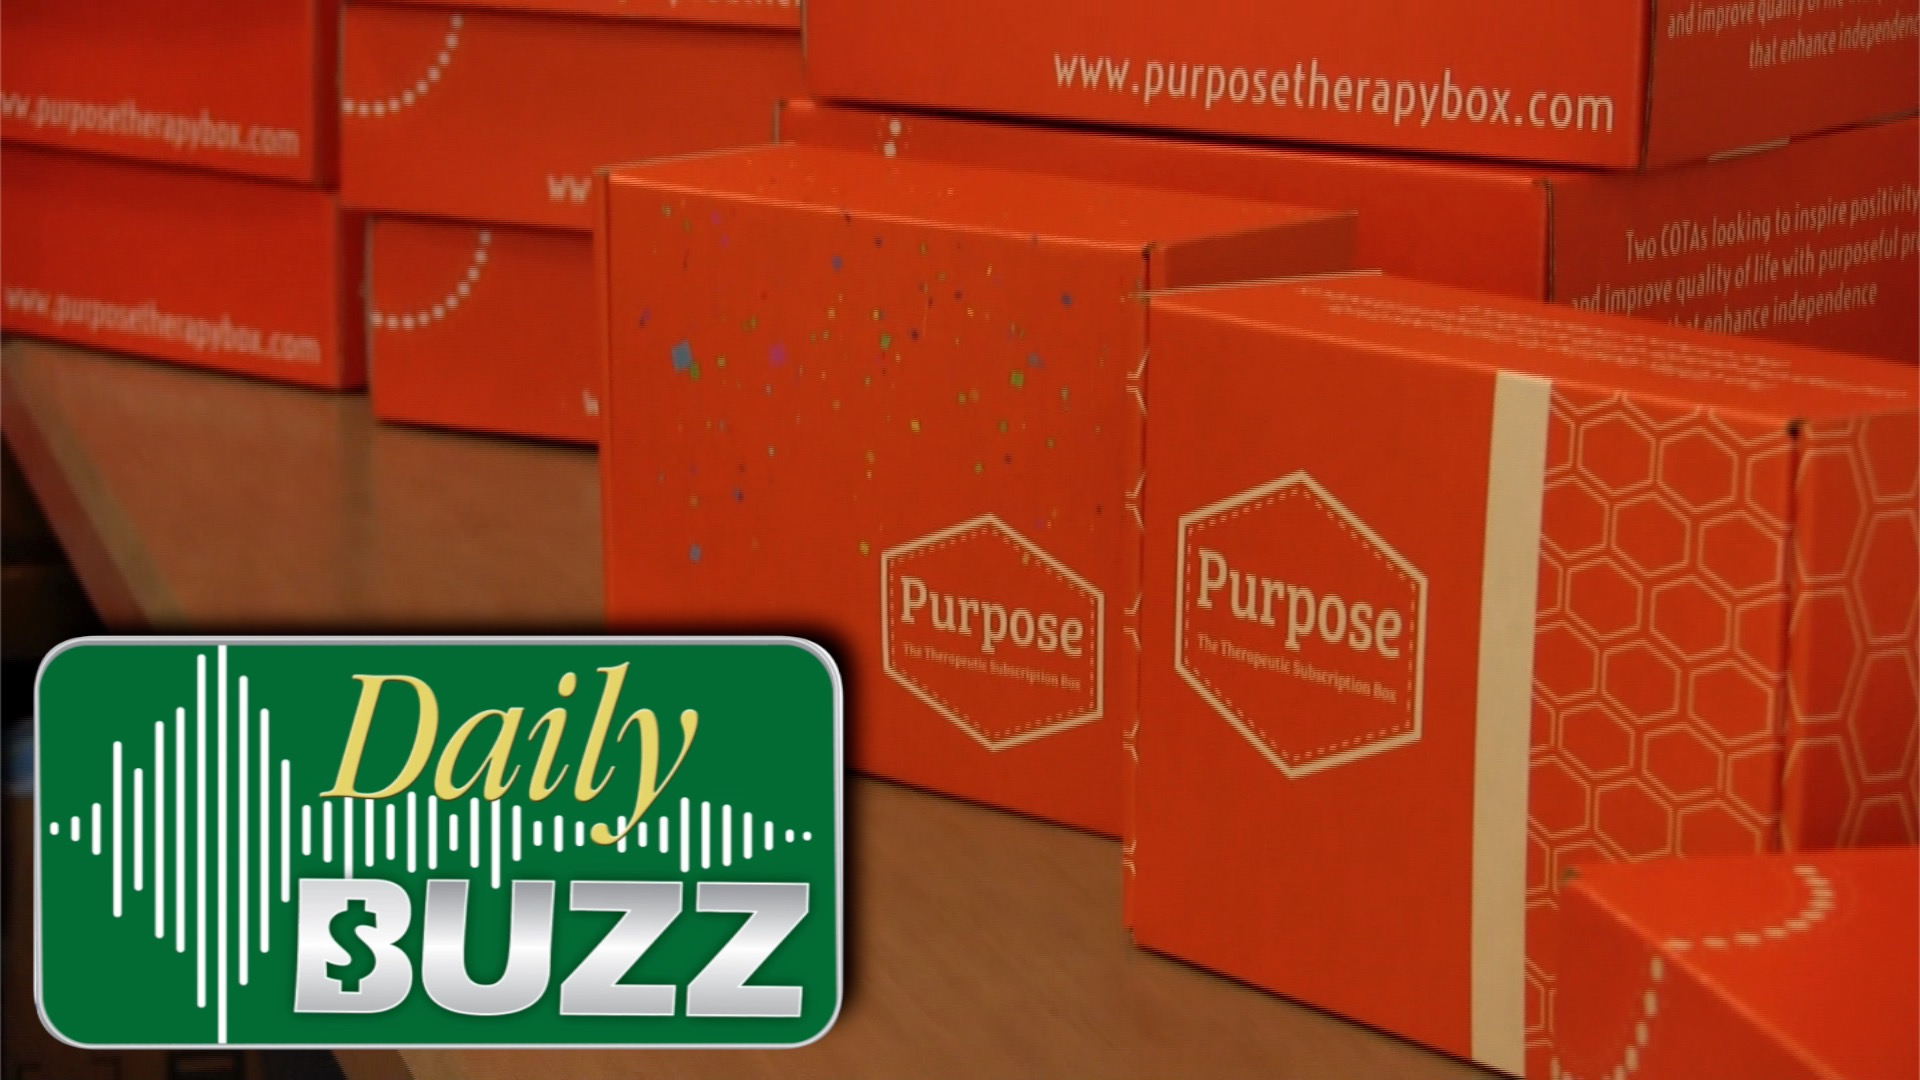 A Subscription Box with a Purpose